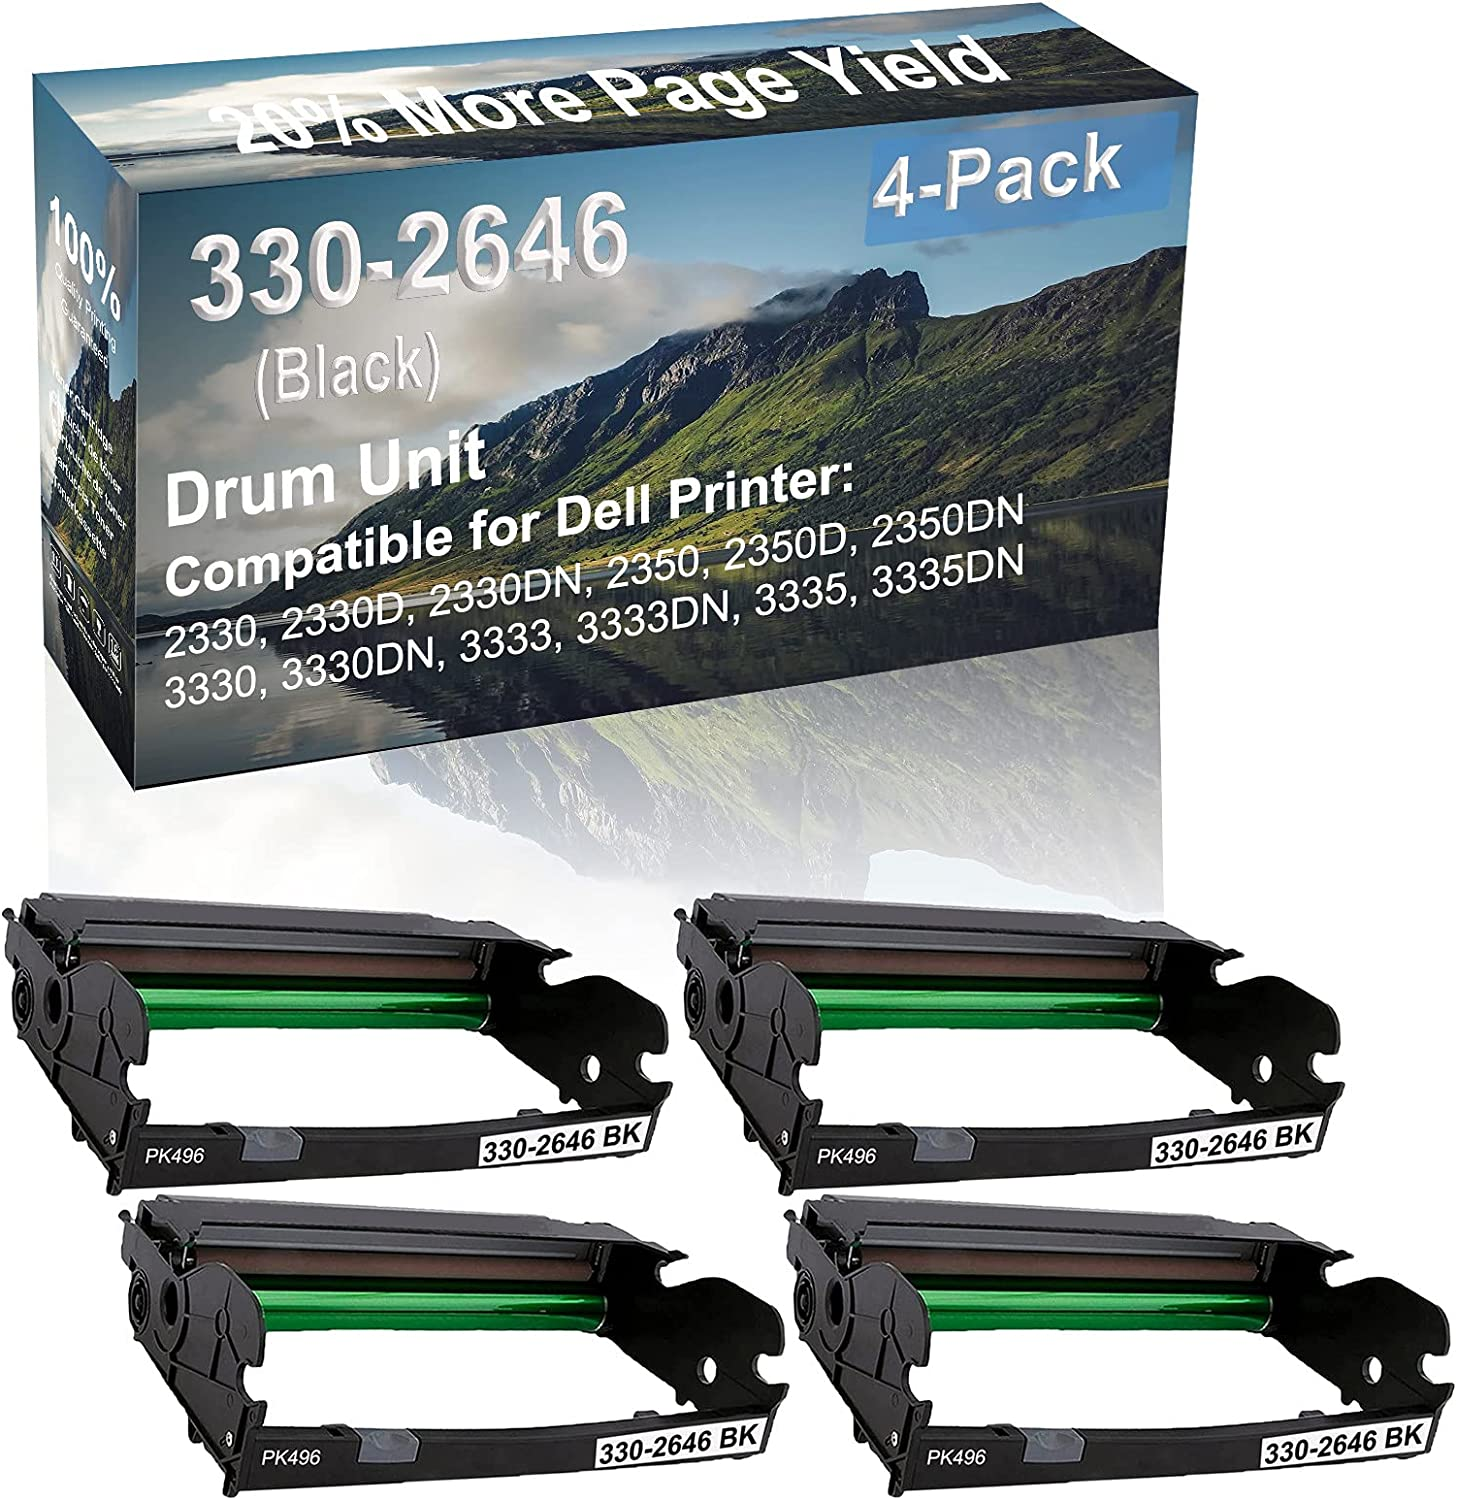 4-Pack Compatible 330-2646 Drum Kit use for Dell 2330, 2330D, 2330DN, 2350 Printer (Black)